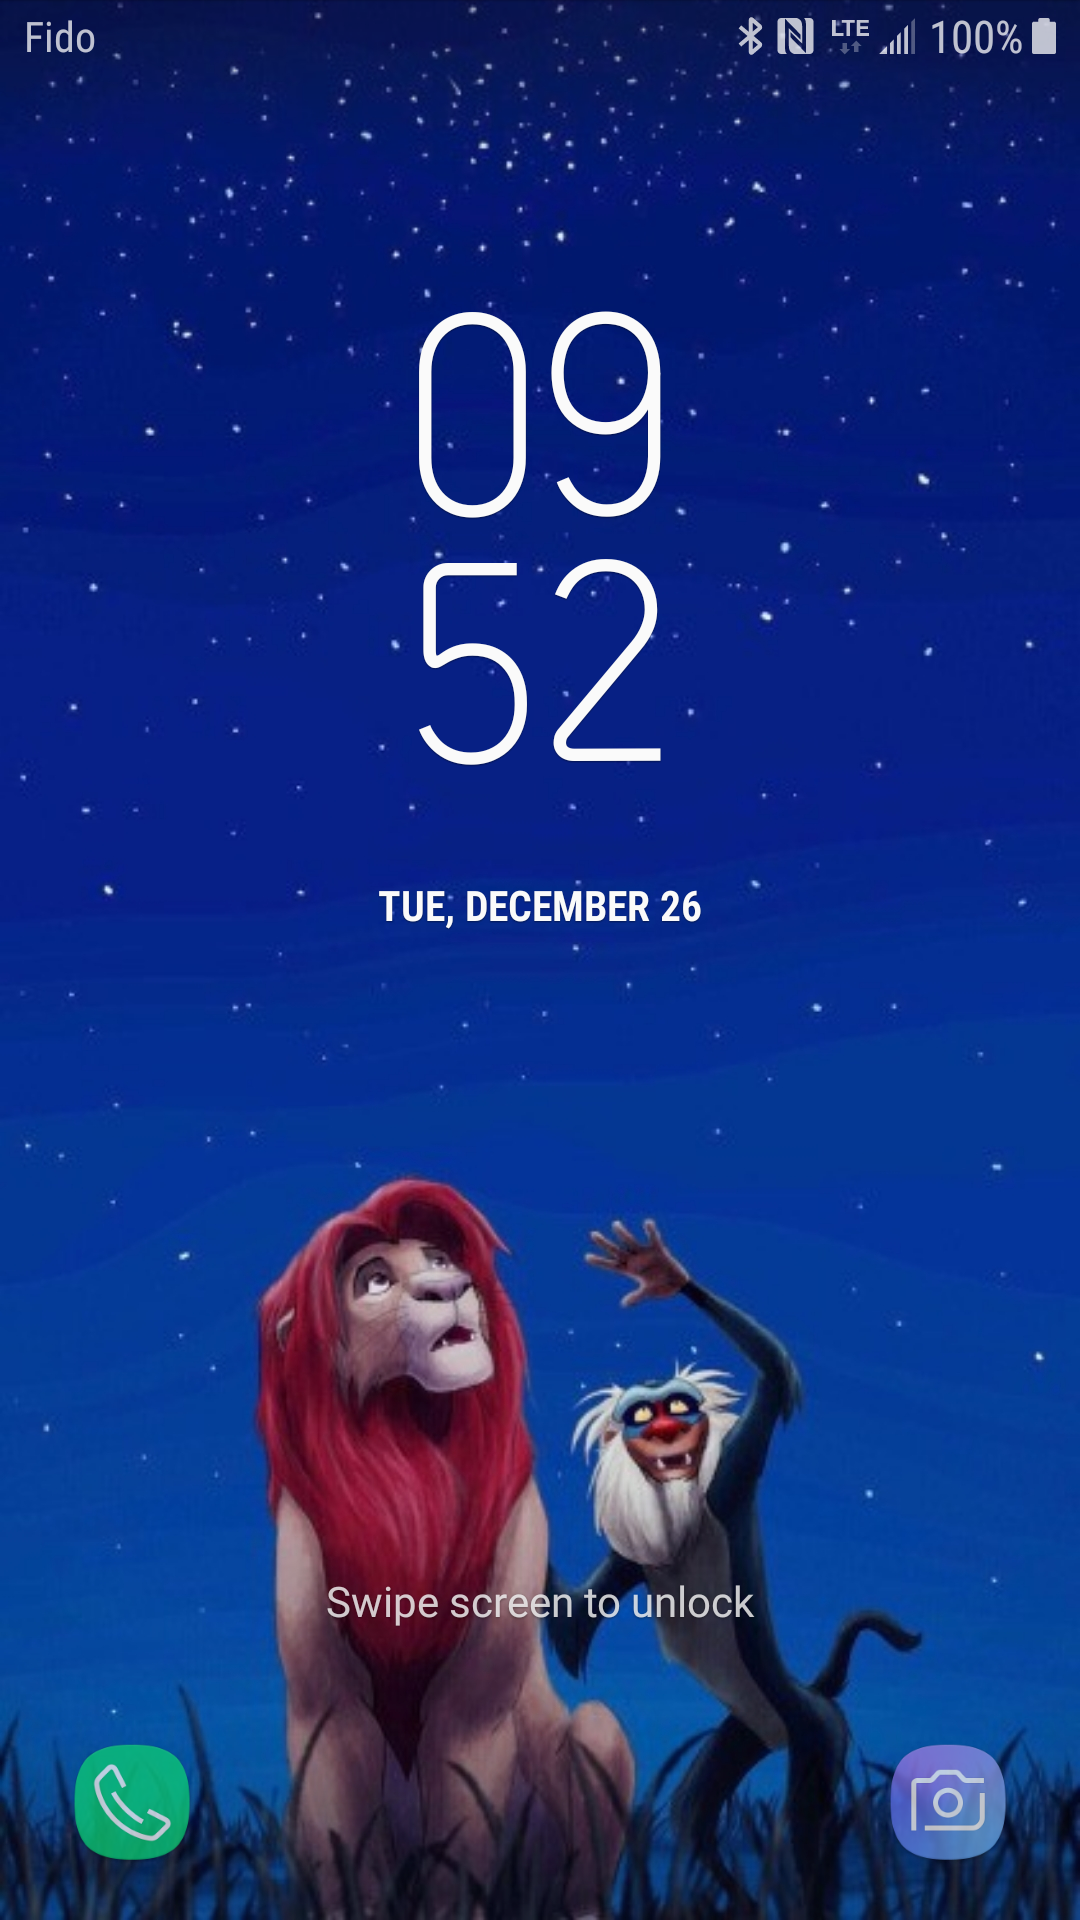 Funny Lock Screen Png Lion King Iphone Wallpaper Hd 1080x1920 Wallpaper Teahub Io